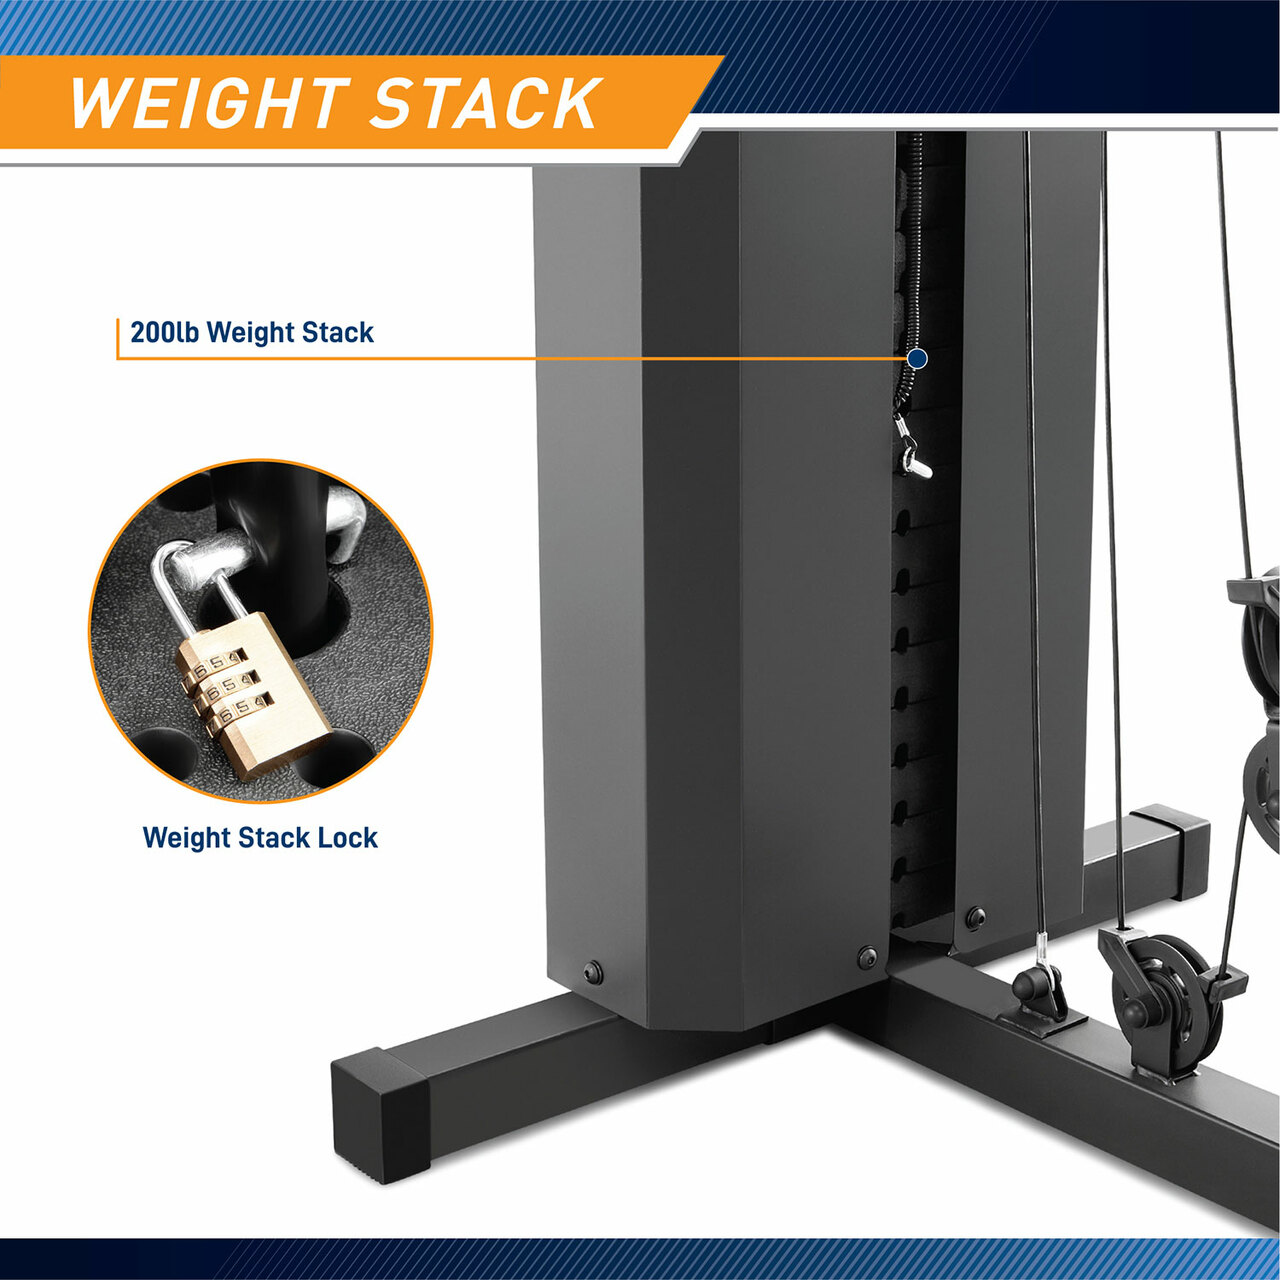 The Marcy Club 200 Lb Home Gym MKM-81010 comes with a lockable weight set for convenience and safety